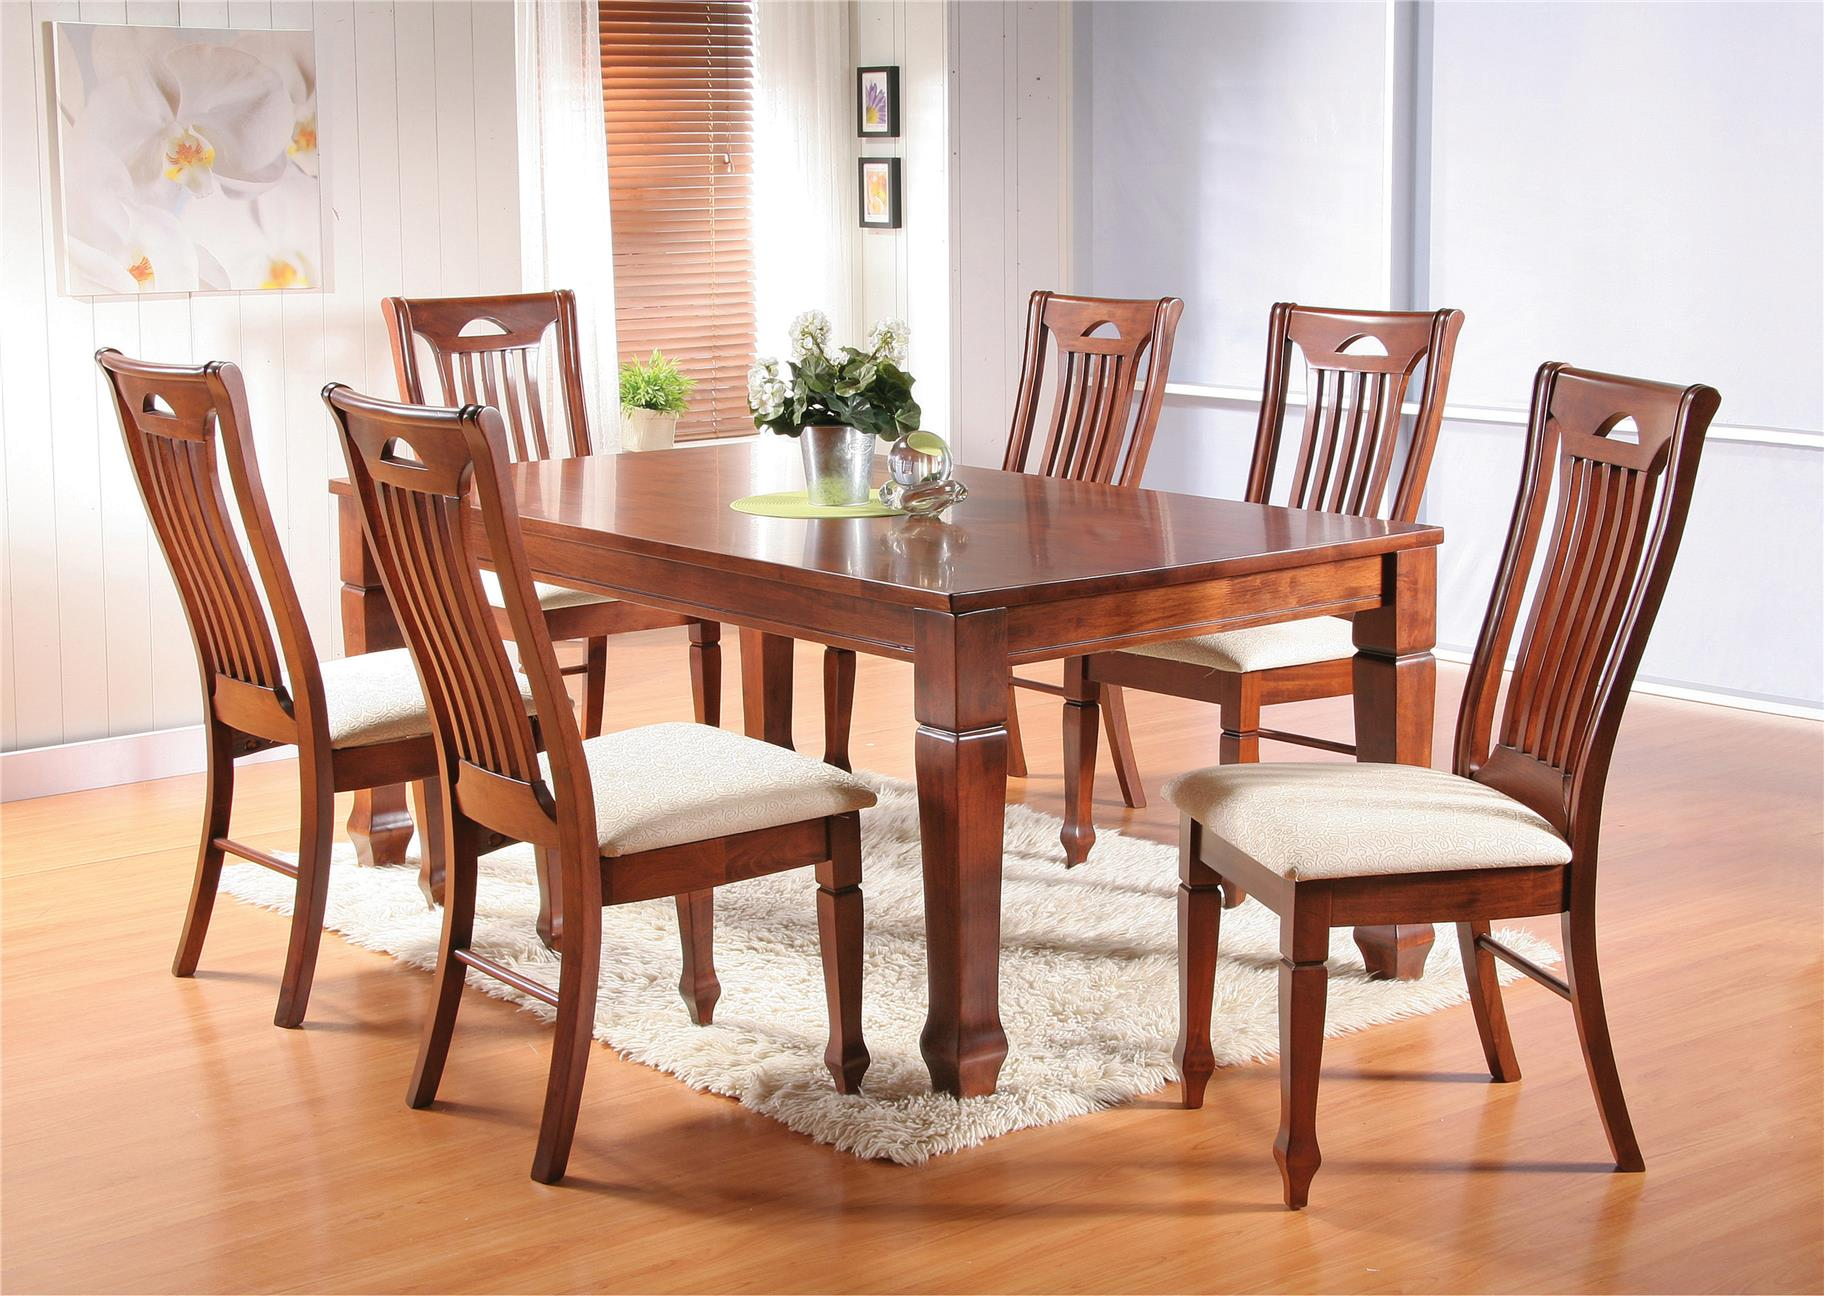 Kiew 6 Cushion Chair 1 Square Table Solid Wood Dining Set Meja Makan